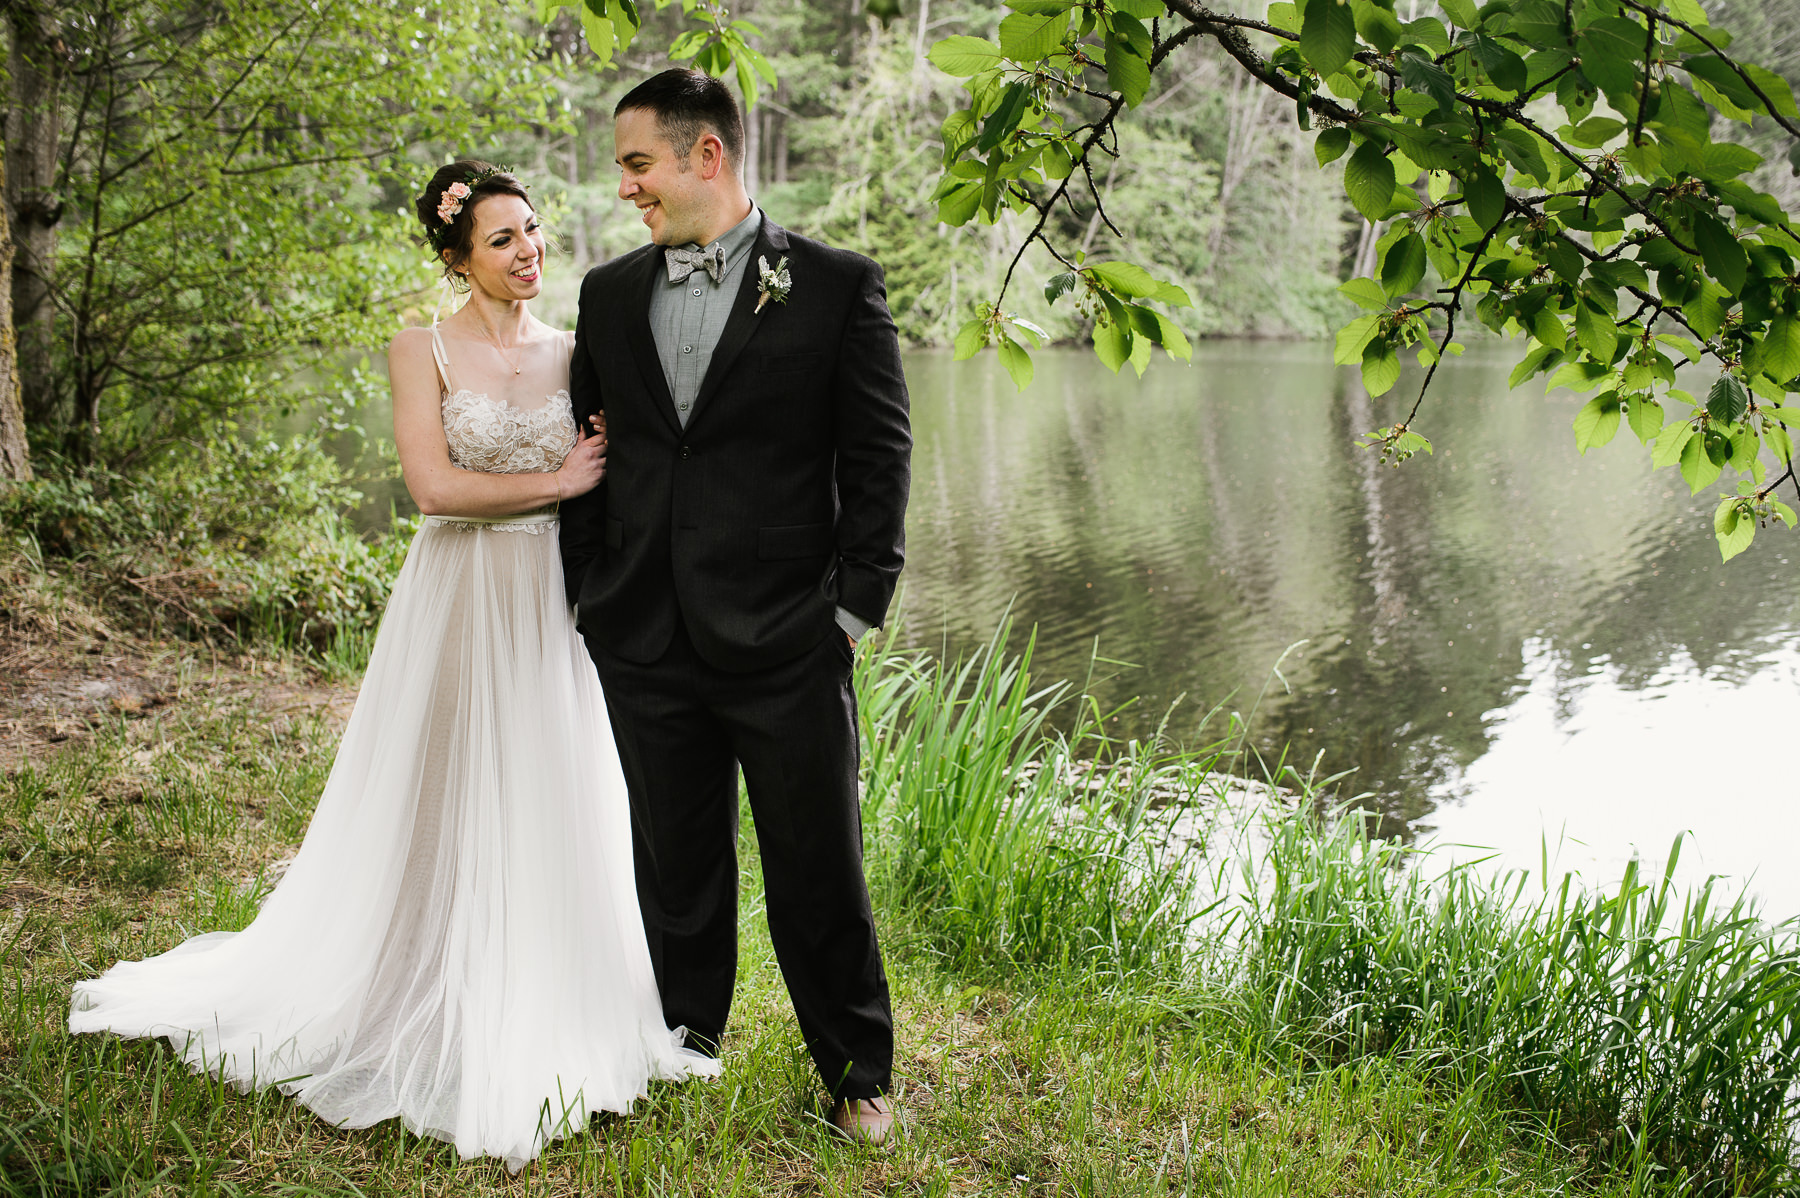 lake dale resort wedding portrait by lake